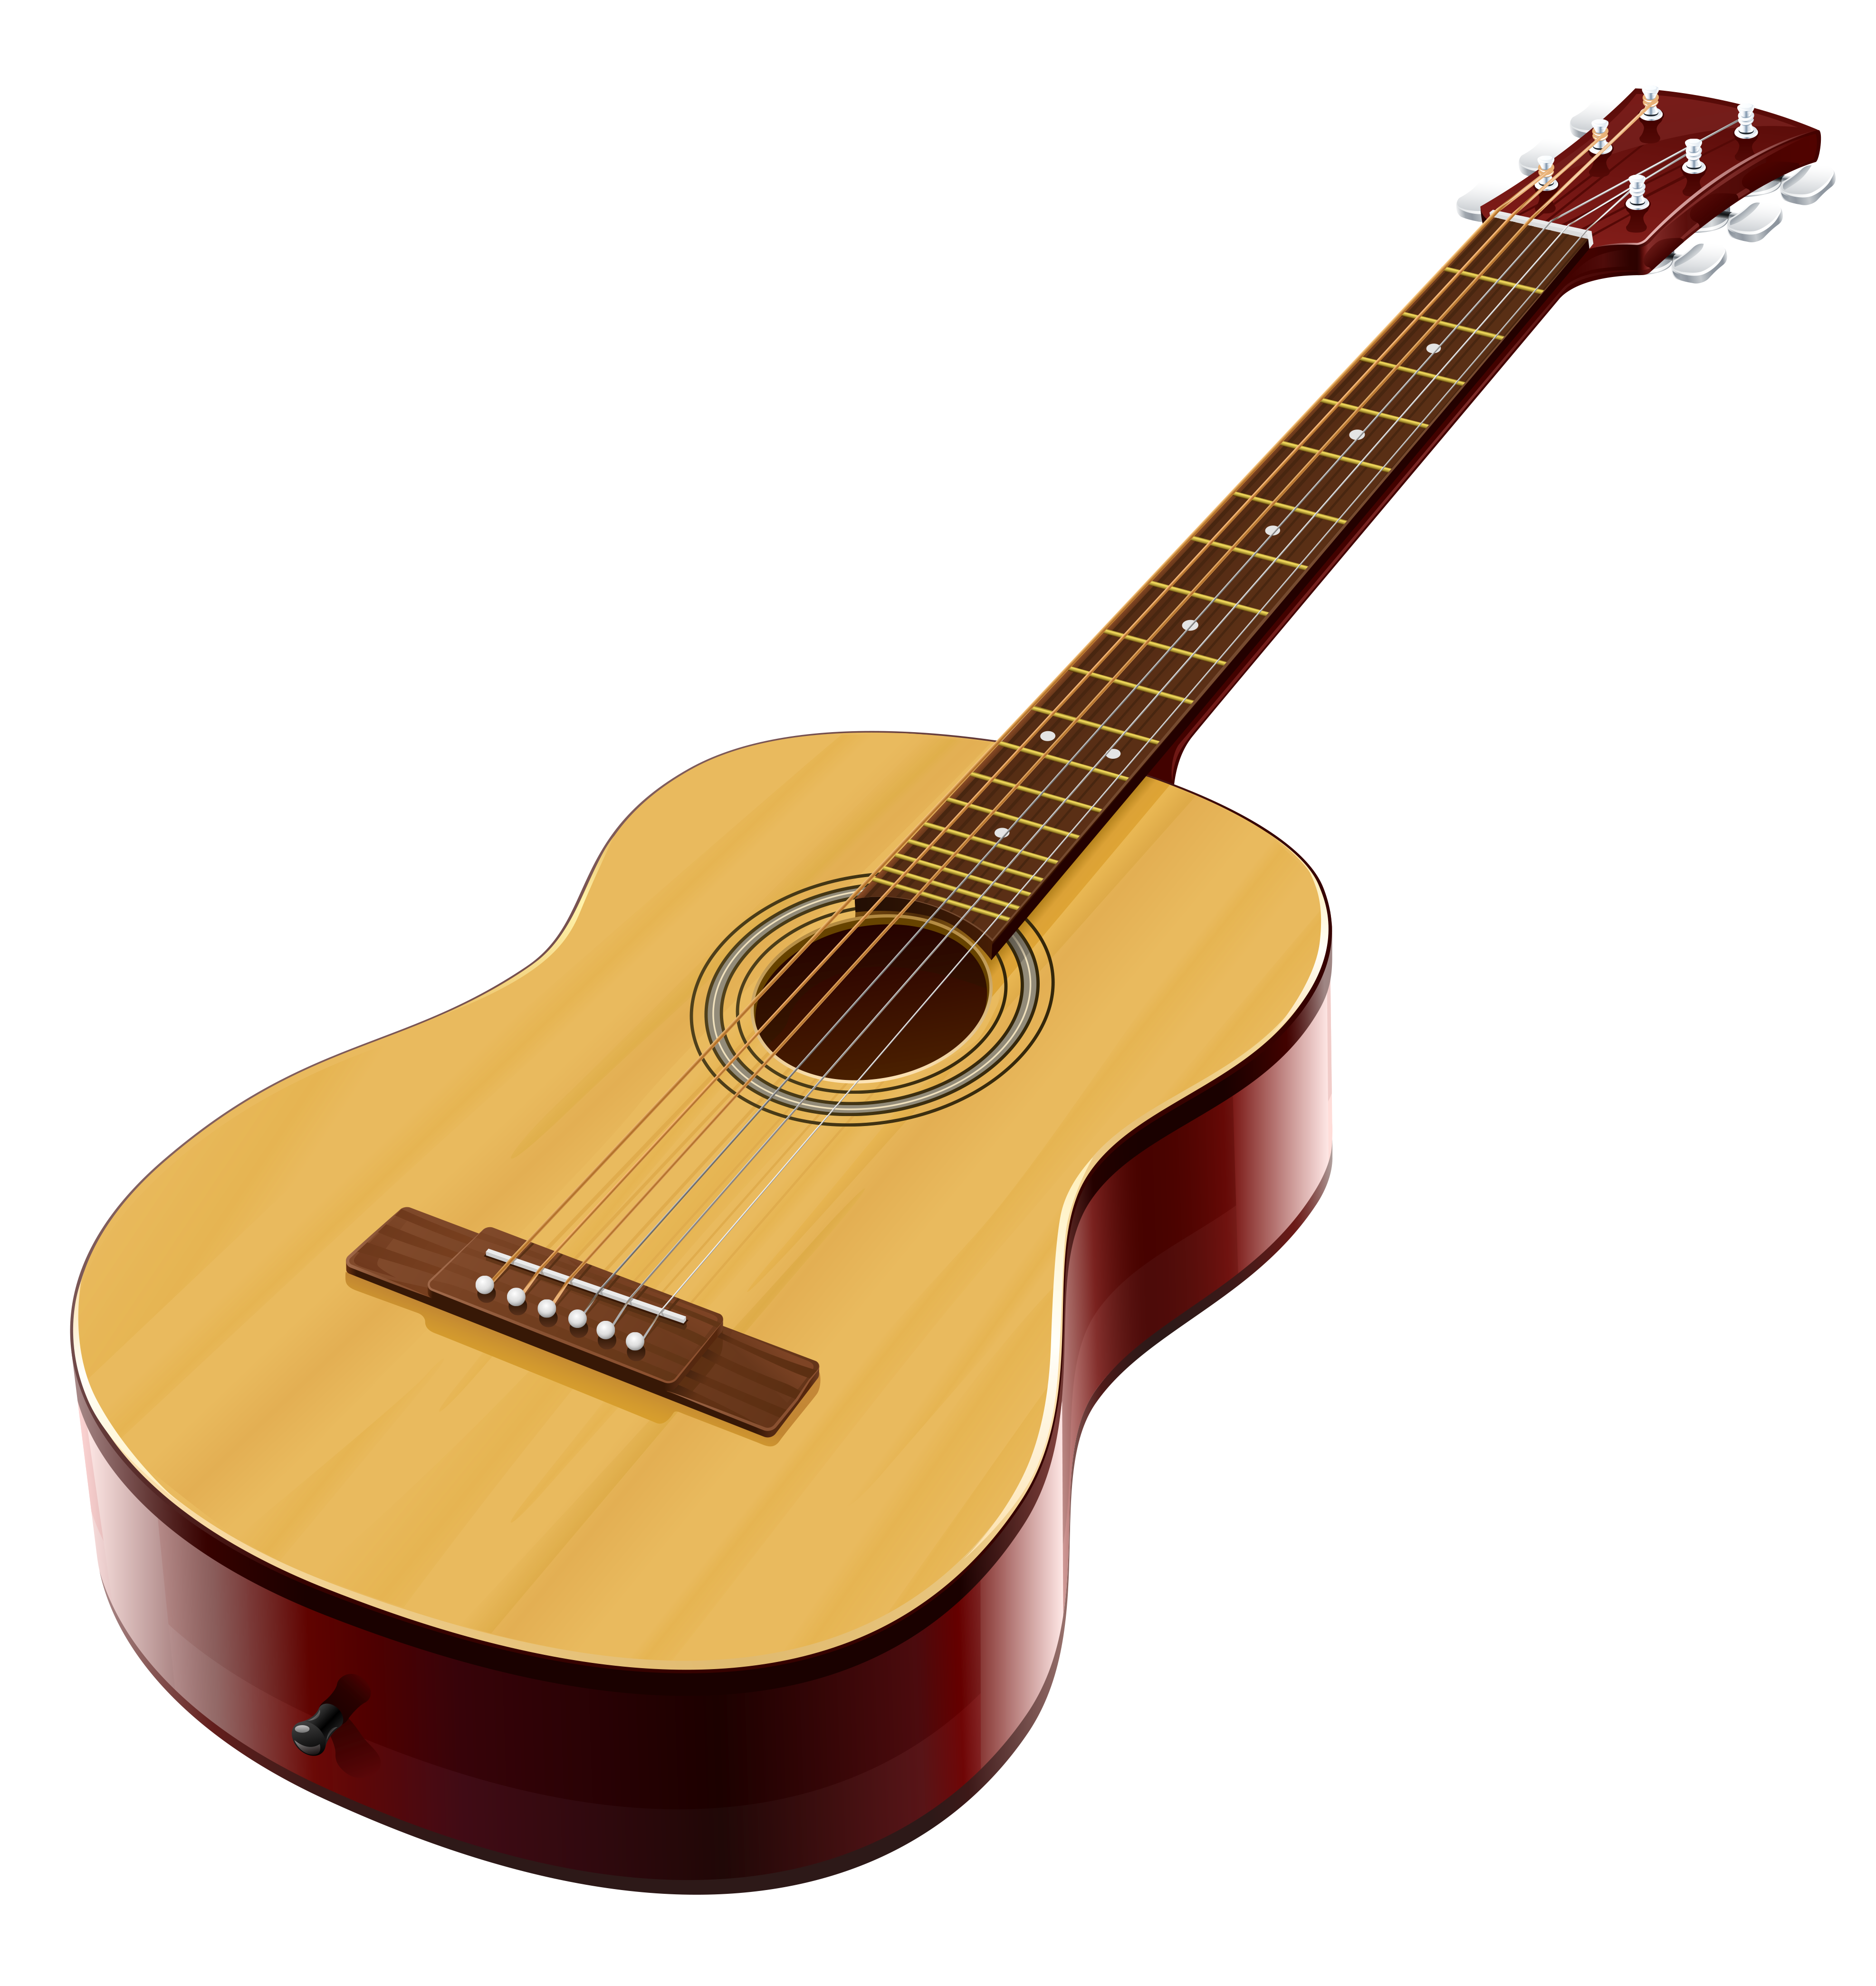 Guitar clipart png. Classic gallery yopriceville high